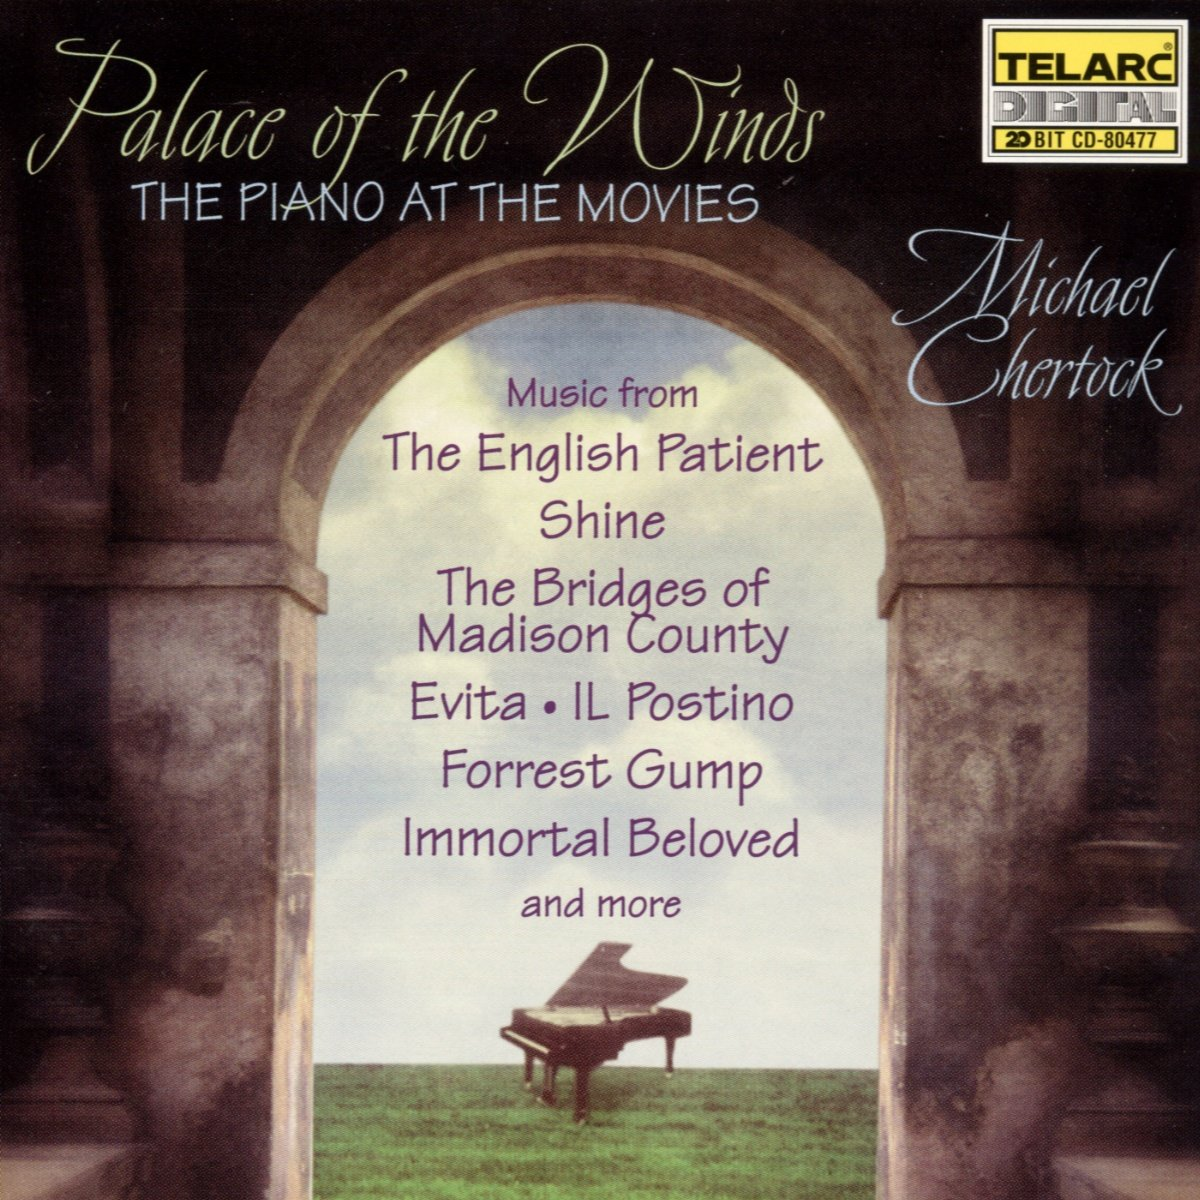 Palace of the Winds: Piano at the Movies by Forrest